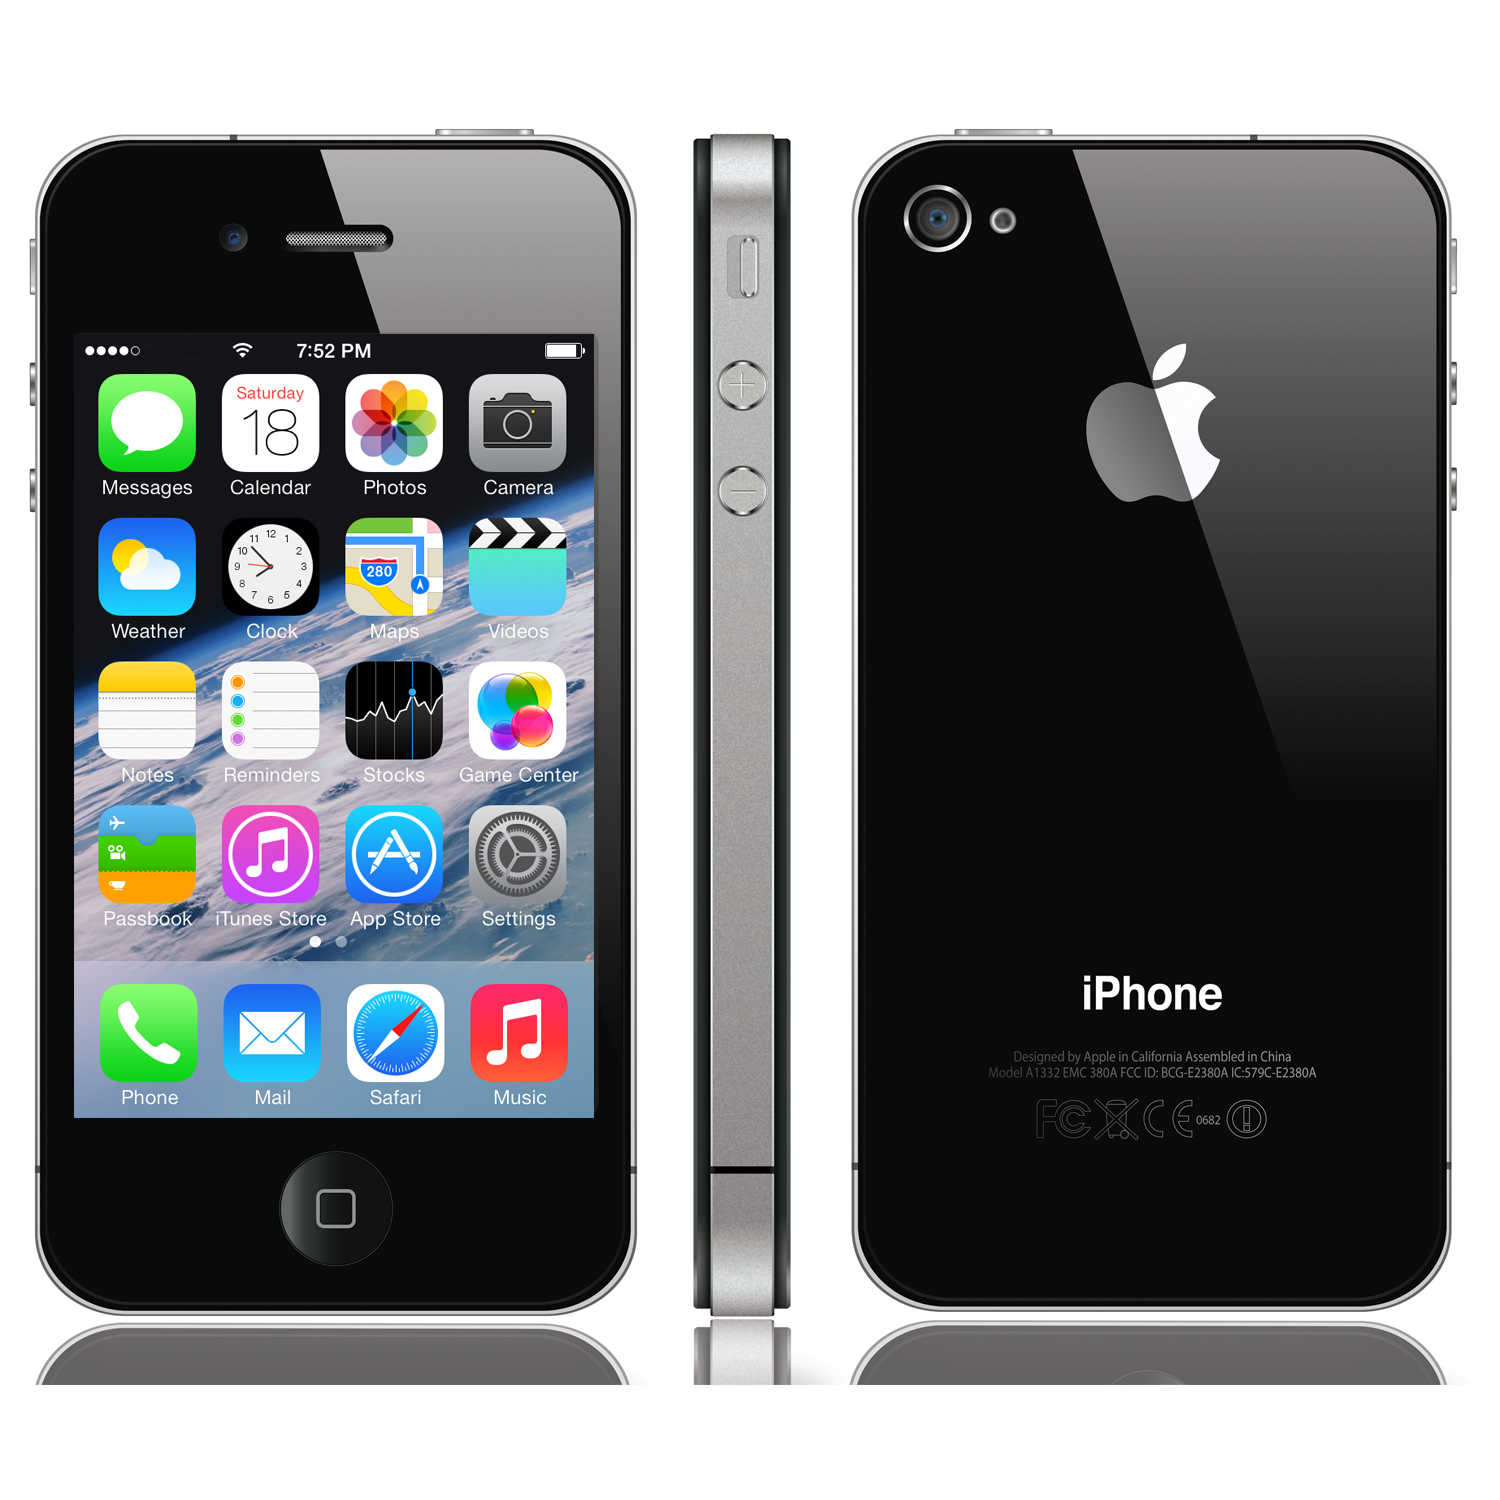 brand new apple iphone 4 8gb unlocked sealed smartphone mobile phone ebay. Black Bedroom Furniture Sets. Home Design Ideas